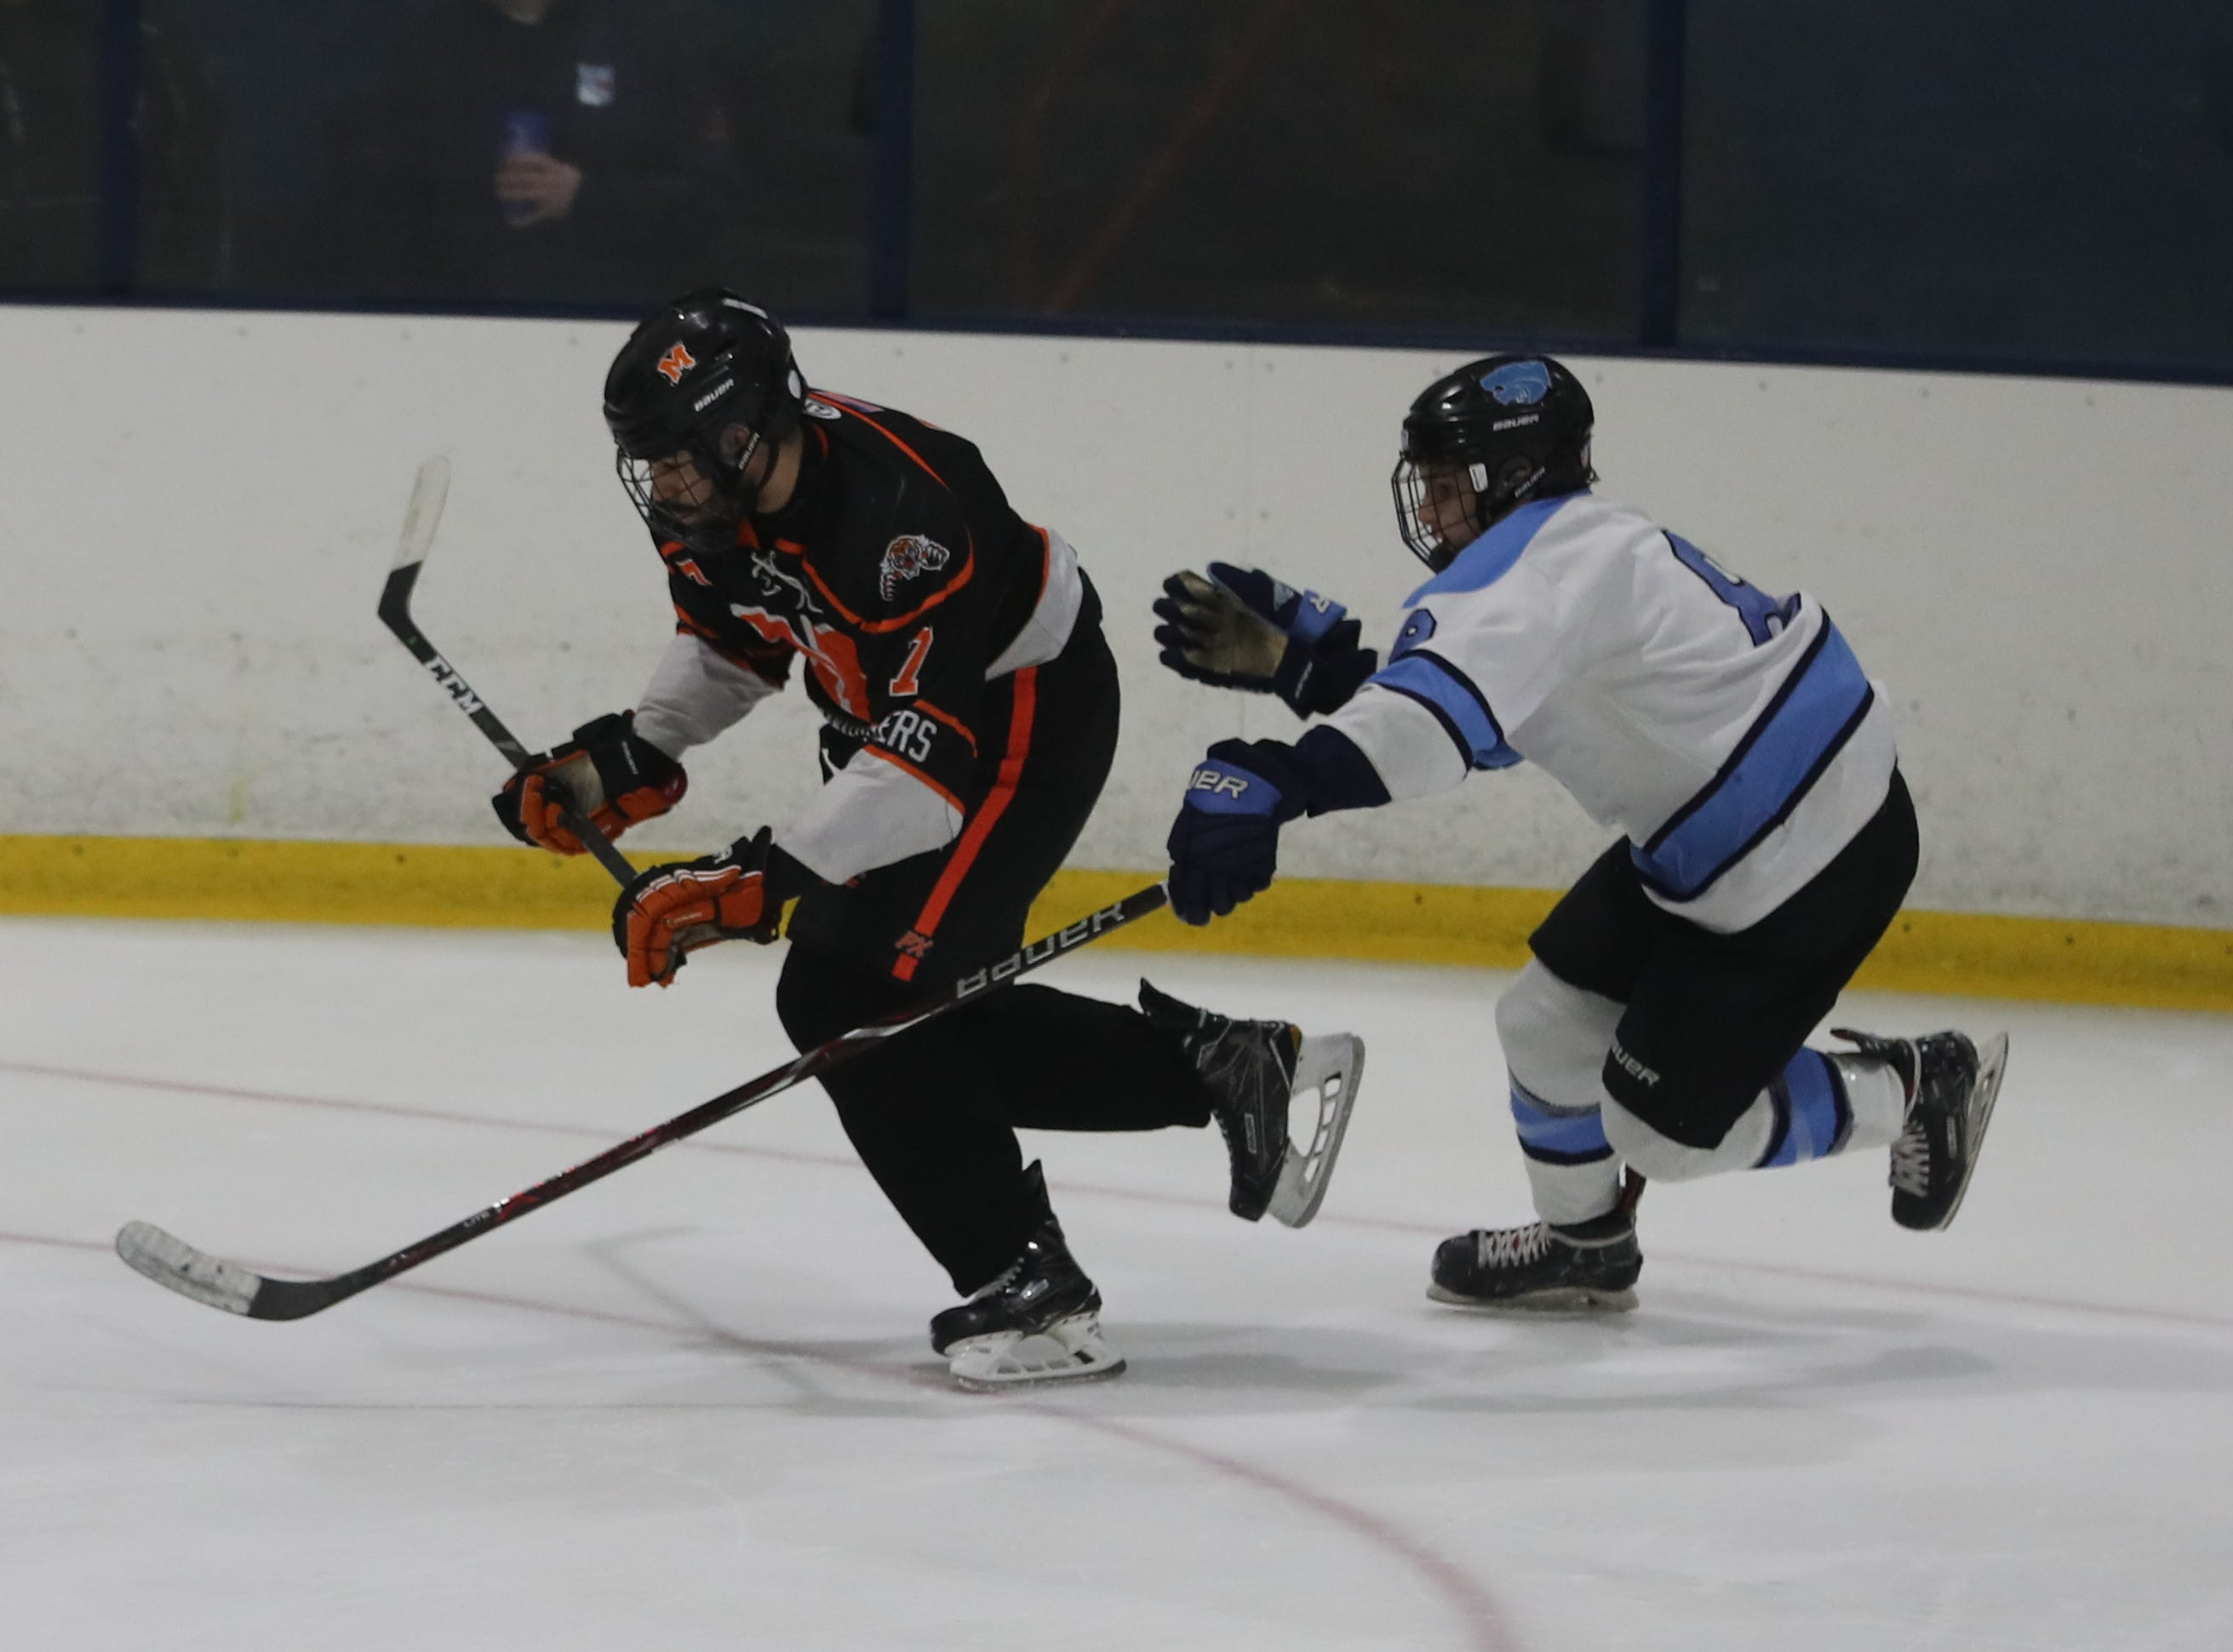 Suffern defeated Mamaroneck 4-1 in the Section 1 Division 1 championship game at Sport-o-Rama in Monsey Feb. 24, 2019.